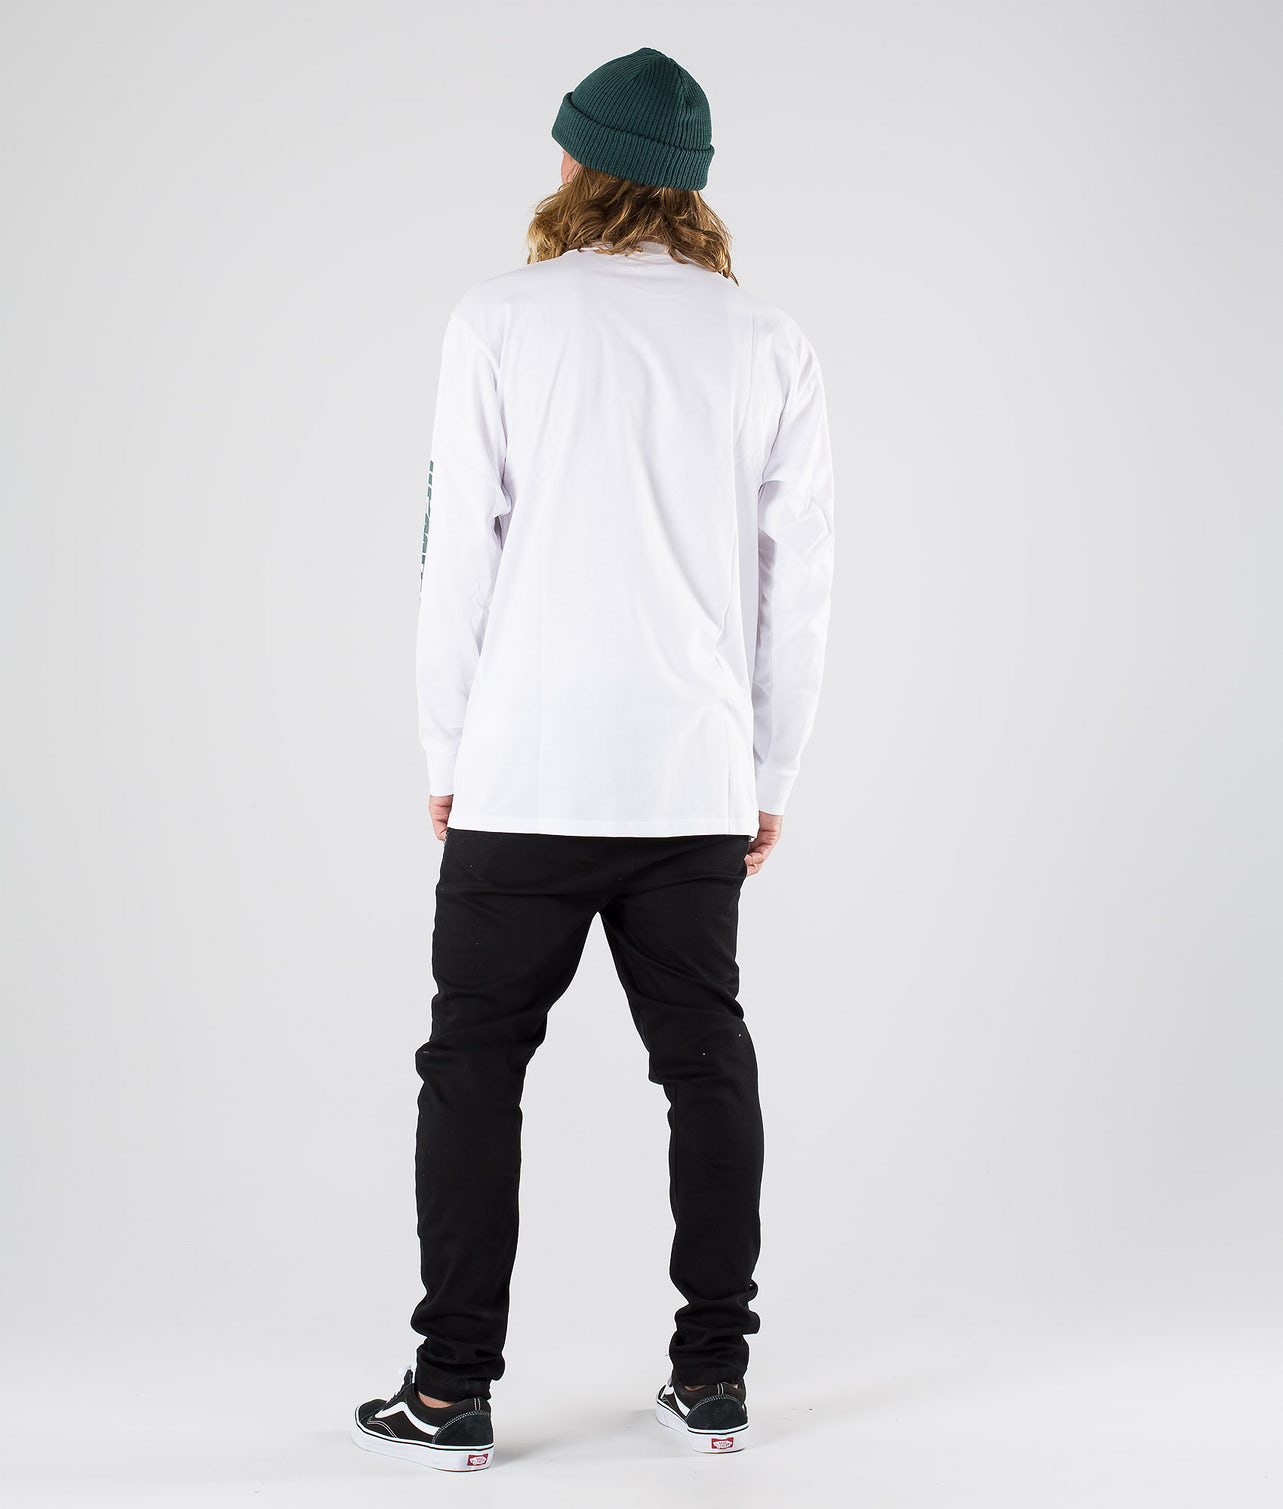 Vans Distorted Performance Longsleeve White